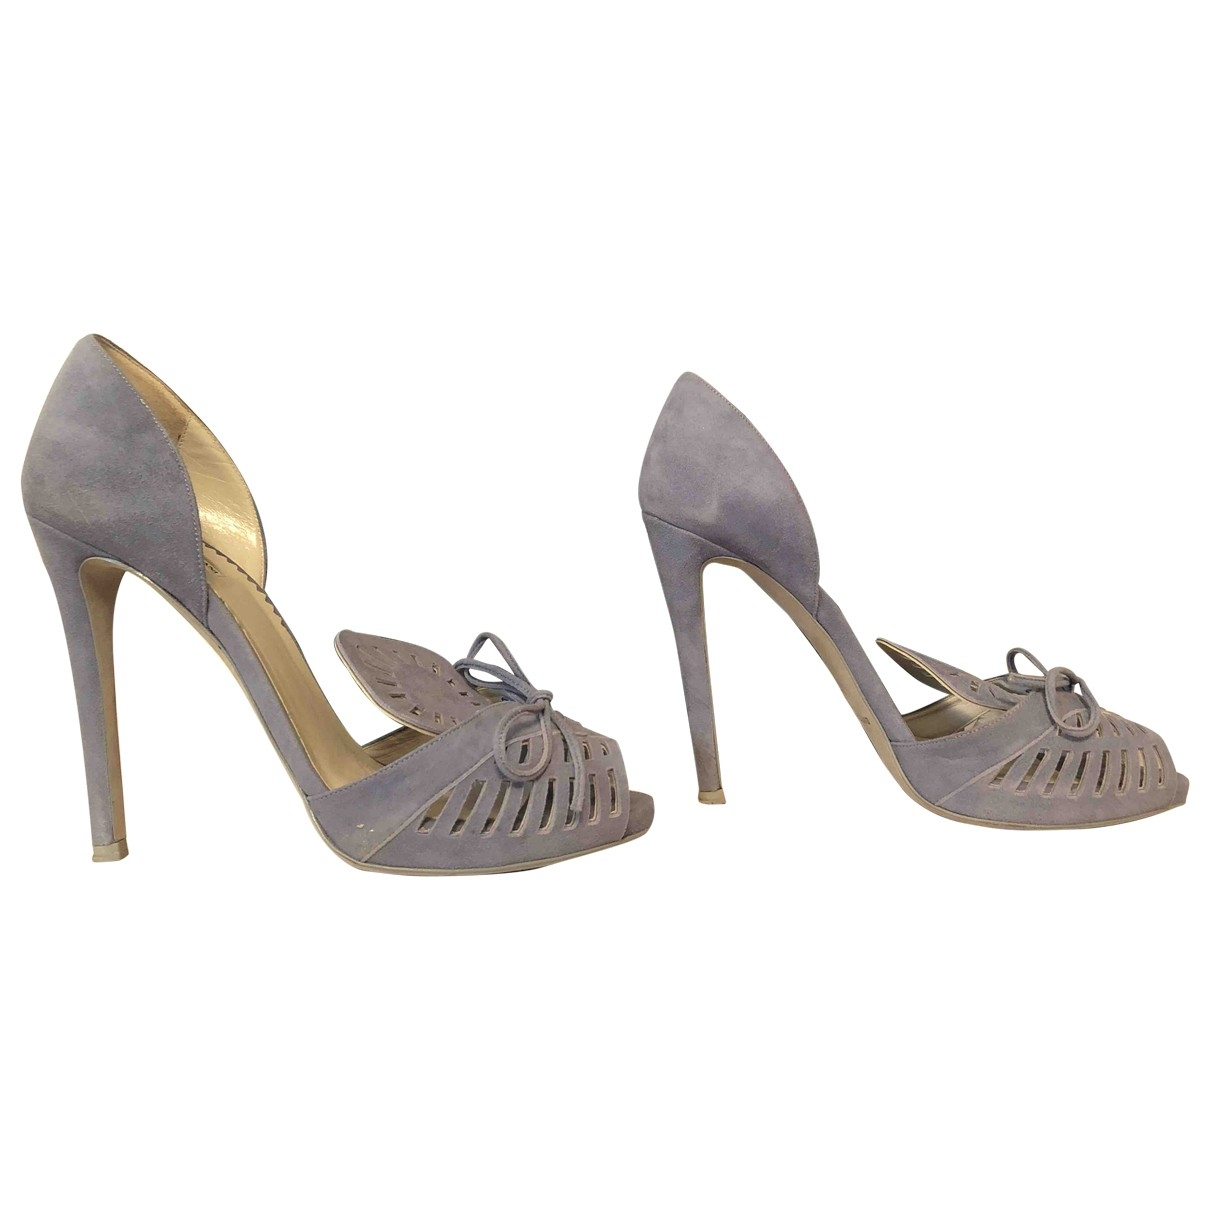 Emporio Armani \N Blue Suede Heels for Women 37.5 EU